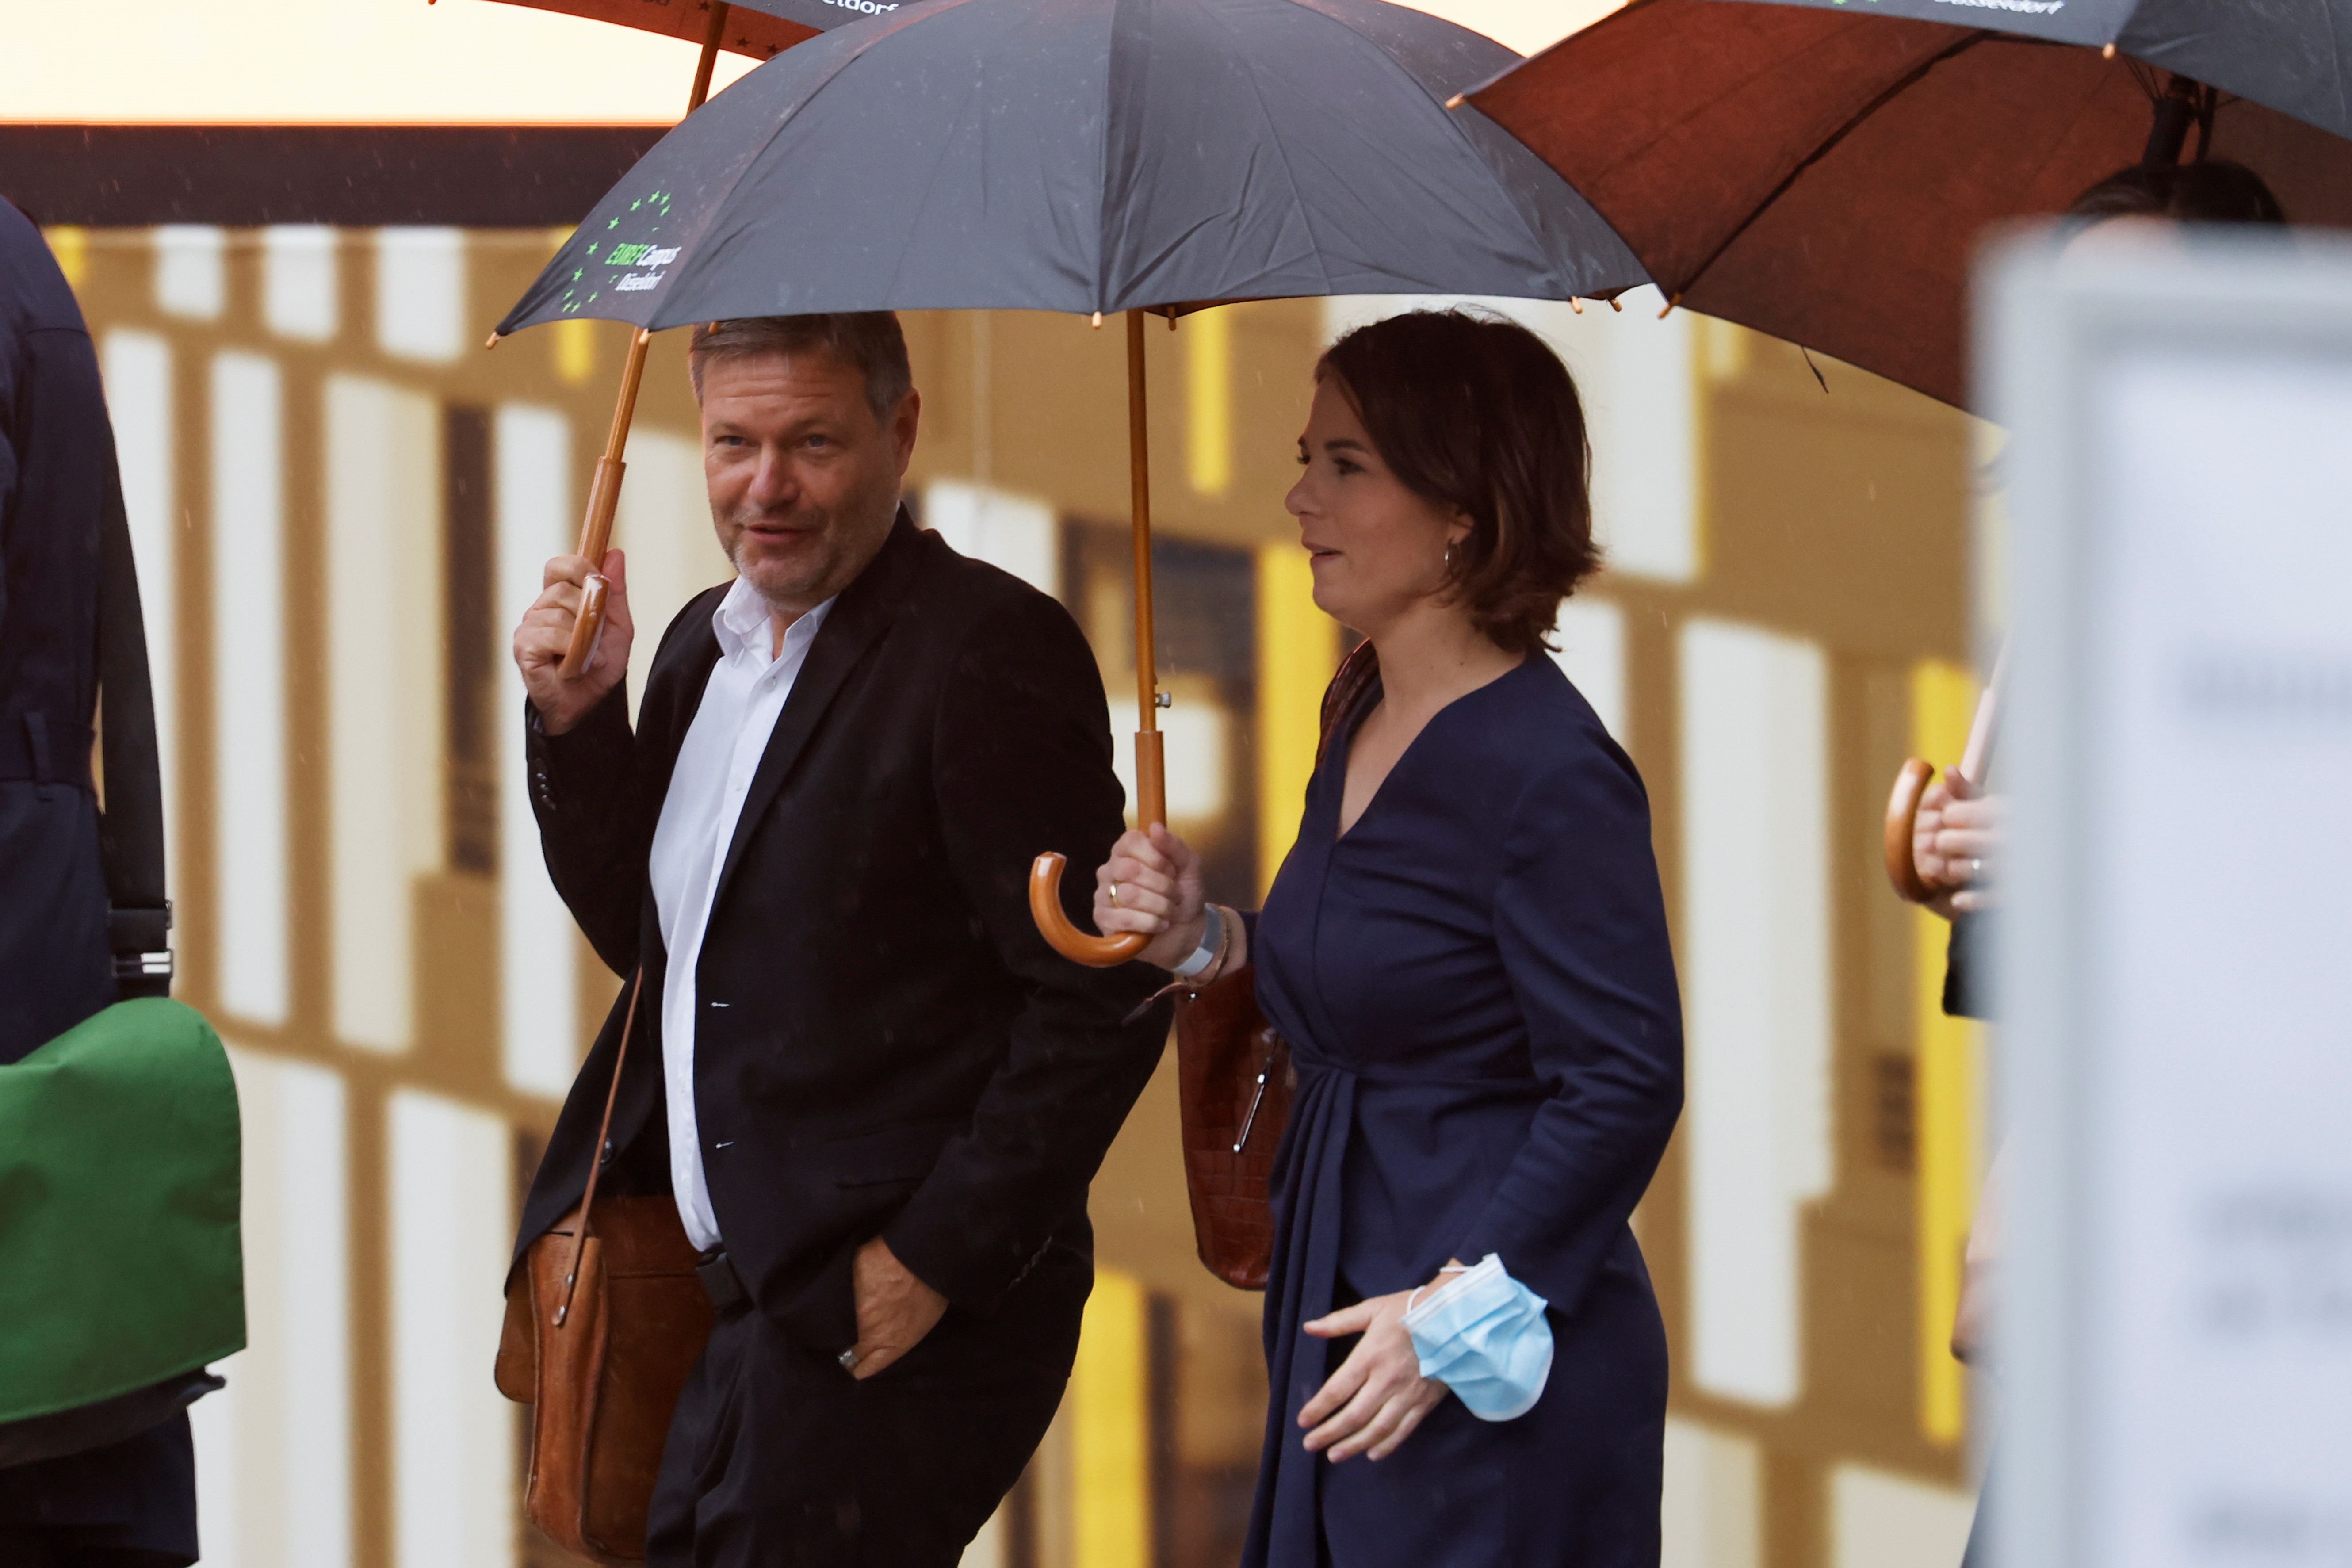 The Greens party co-leaders Annalena Baerbock and Robert Habeck arrive to attend exploratory talks between the CDU, the CSU and the Greens for a possible new government coalition in Berlin, Germany, October 5, 2021. REUTERS/Michele Tantussi